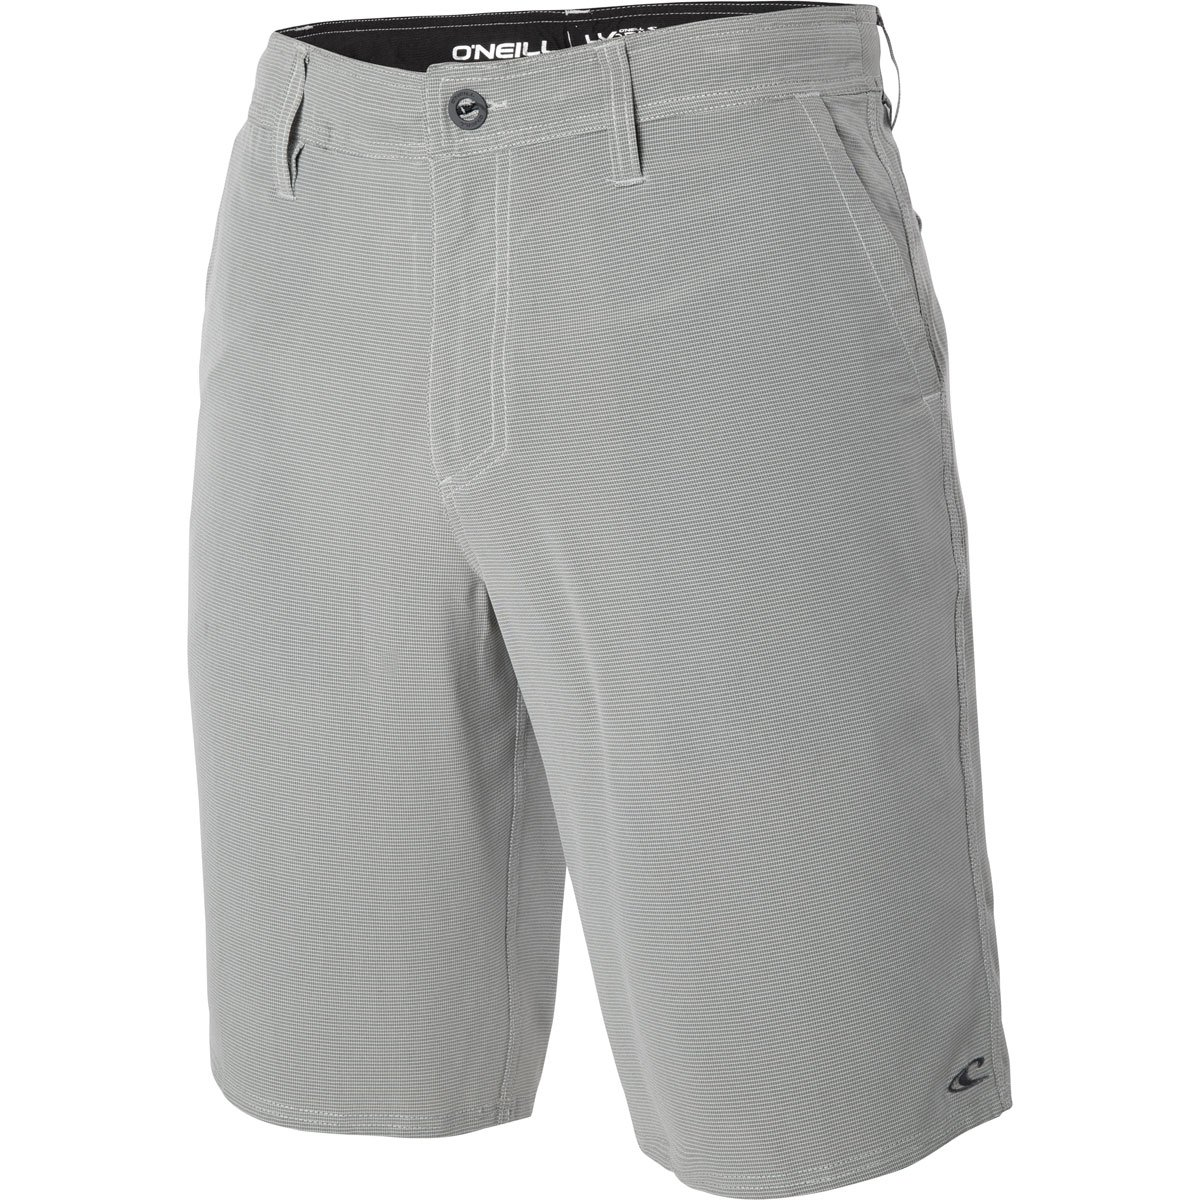 36910f4edd Outdoor Recreation Men ONeill Mens 21 Inch Outseam Hybrid Stretch Walk Short